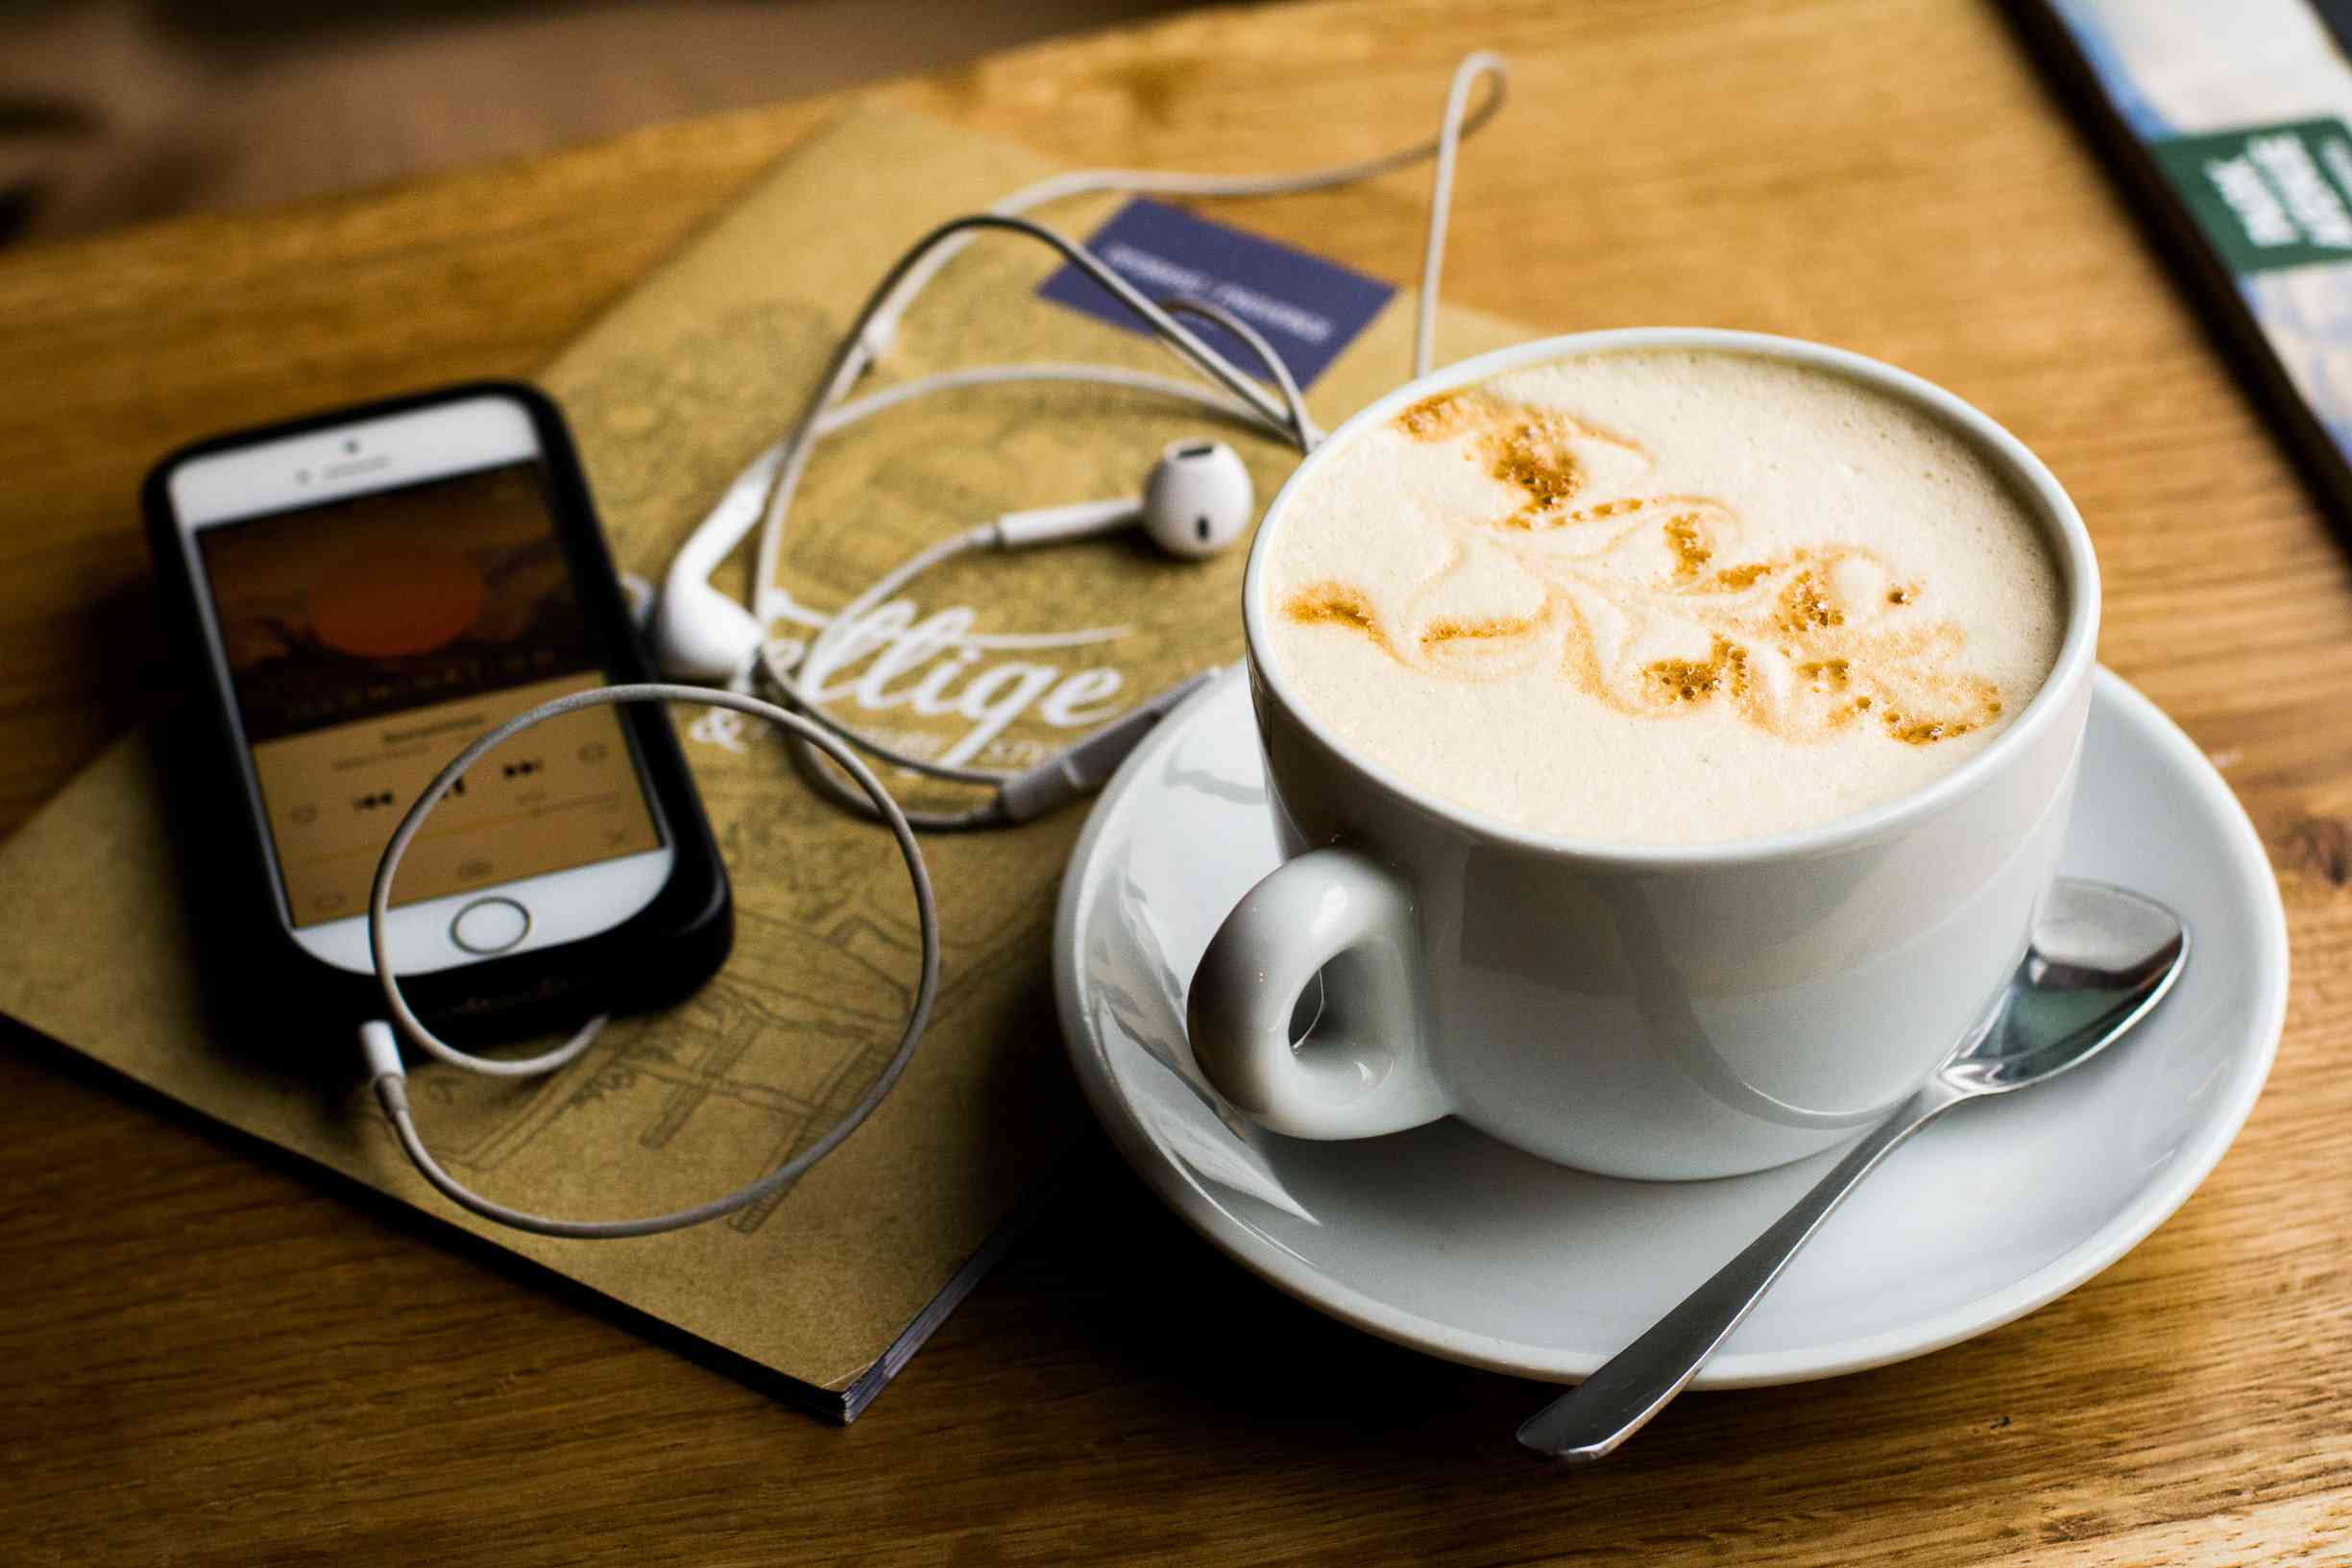 An iPhone displaying a podcast, connected to wired headphone with a travel journal and a cup of café coffee nearby.